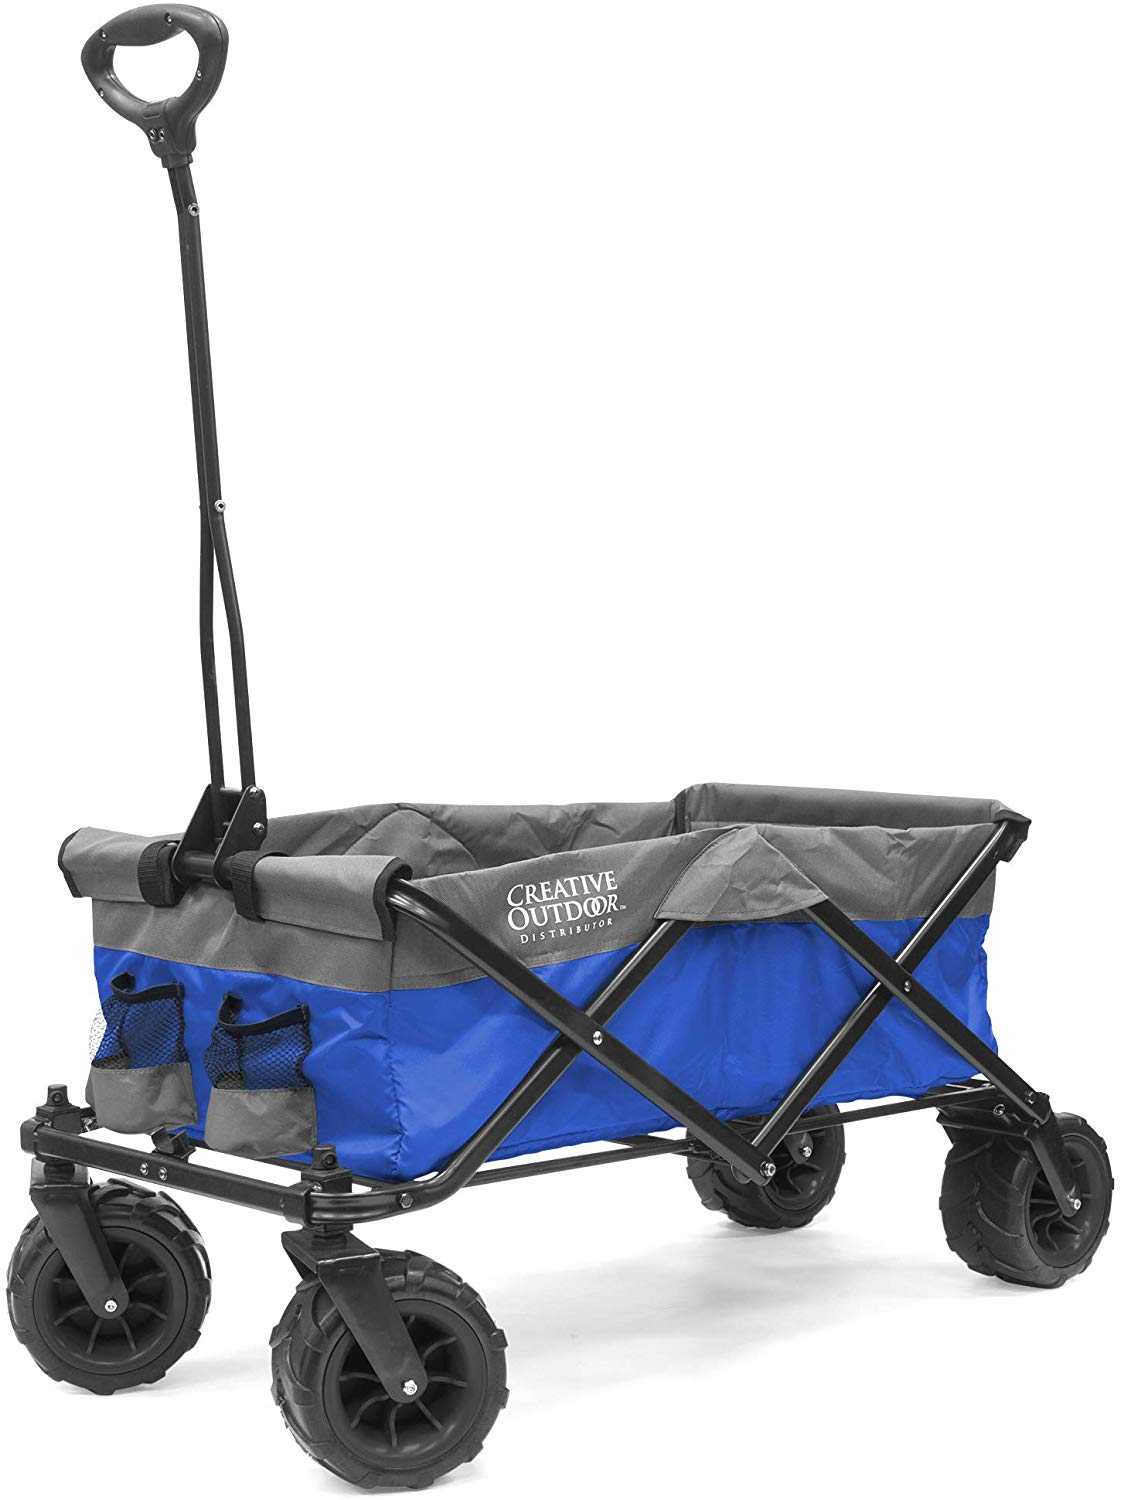 Creative Outdoor Distributor 920031 Platinum Series | Best Beach Carts